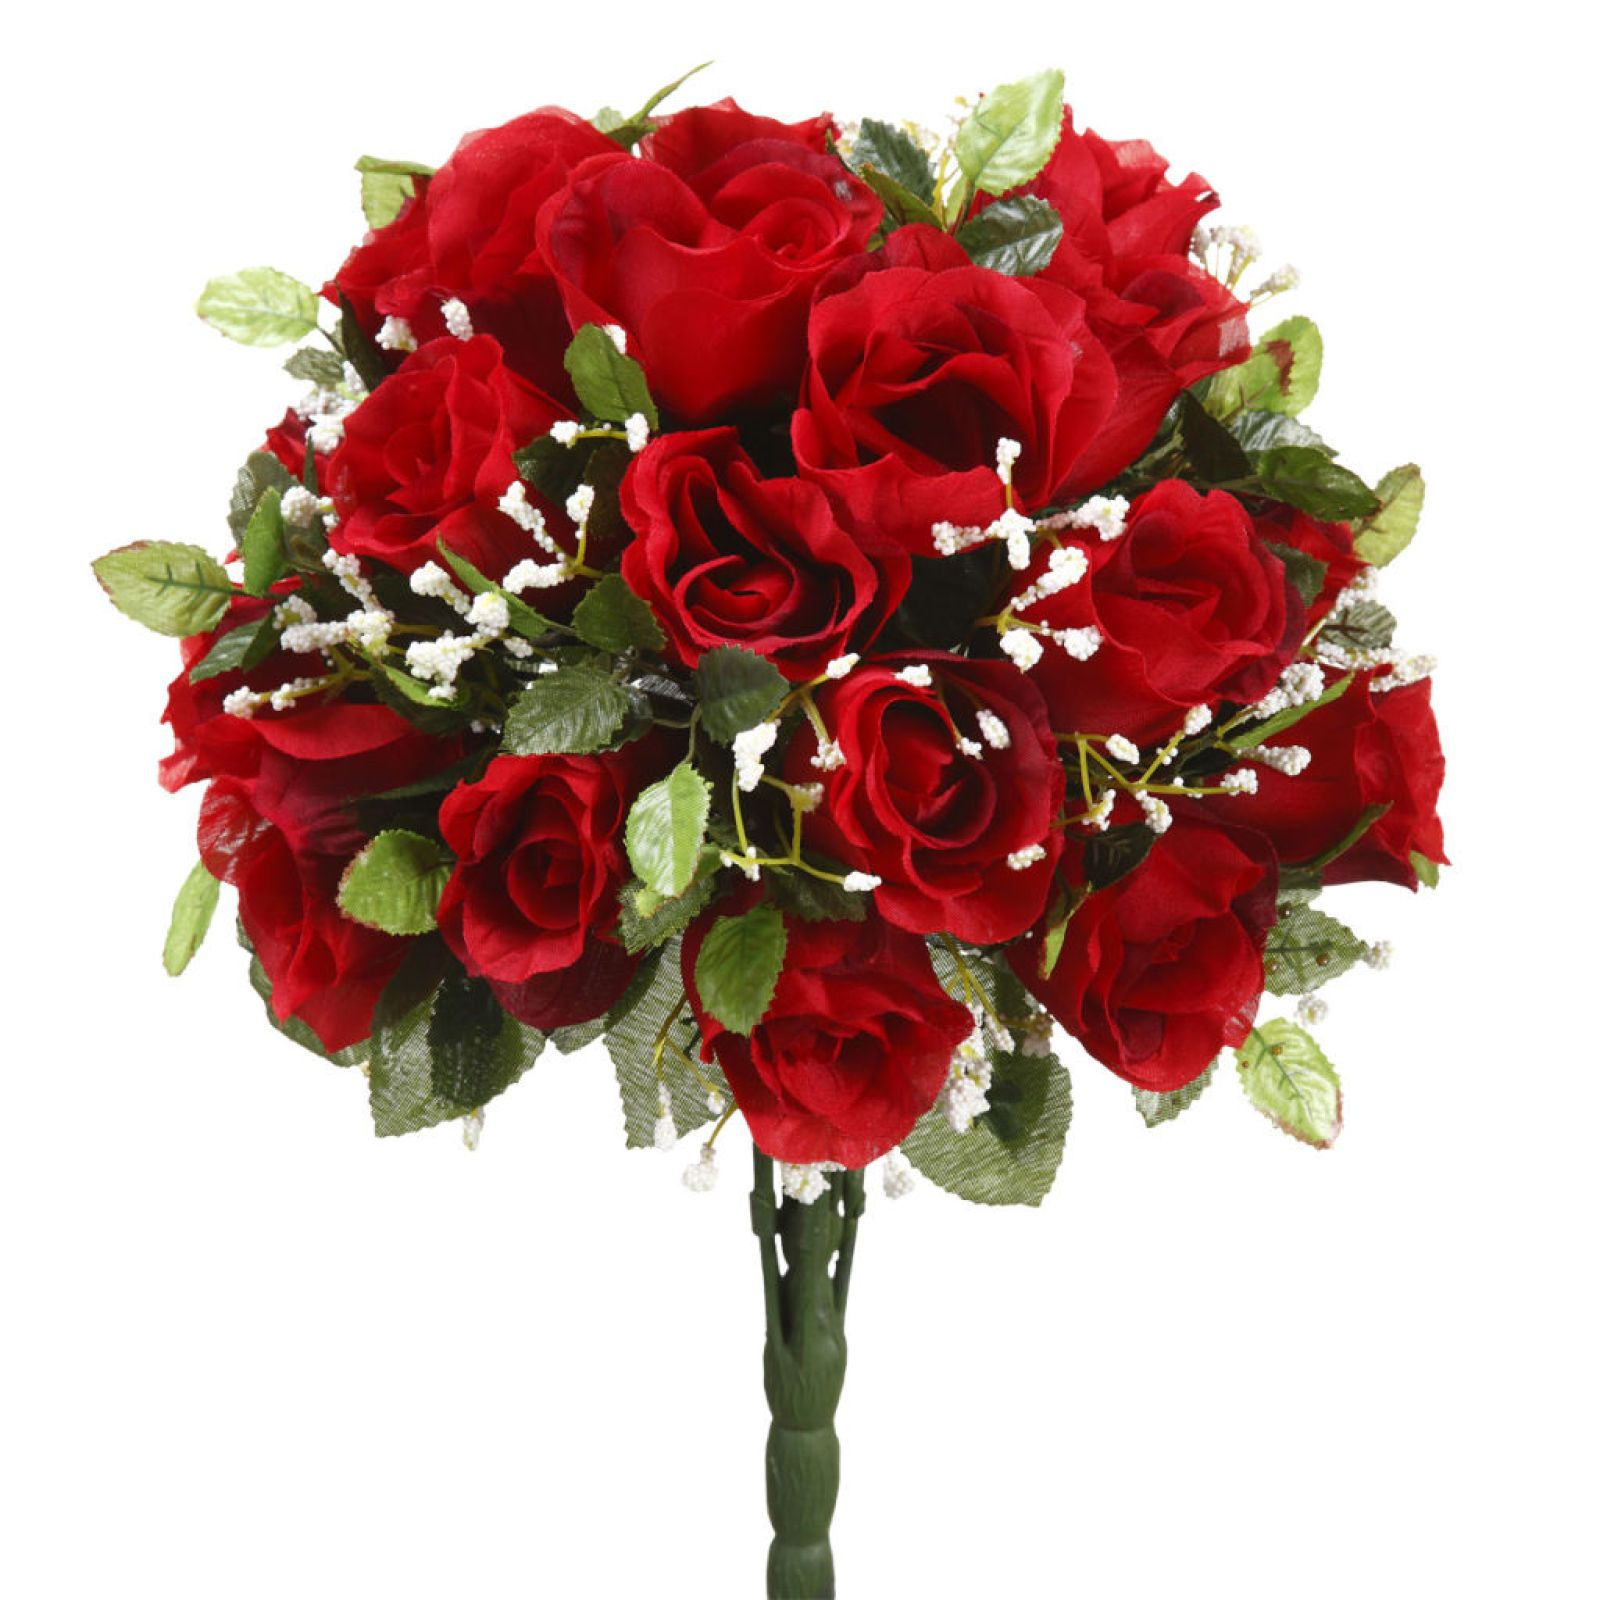 Ashland classic traditions rose bush michaels 1299 wedding this rose bush bunch is ideal for the do it yourself wedding shower or luncheon with a fresh design that makes it easy to create that ideal experience solutioingenieria